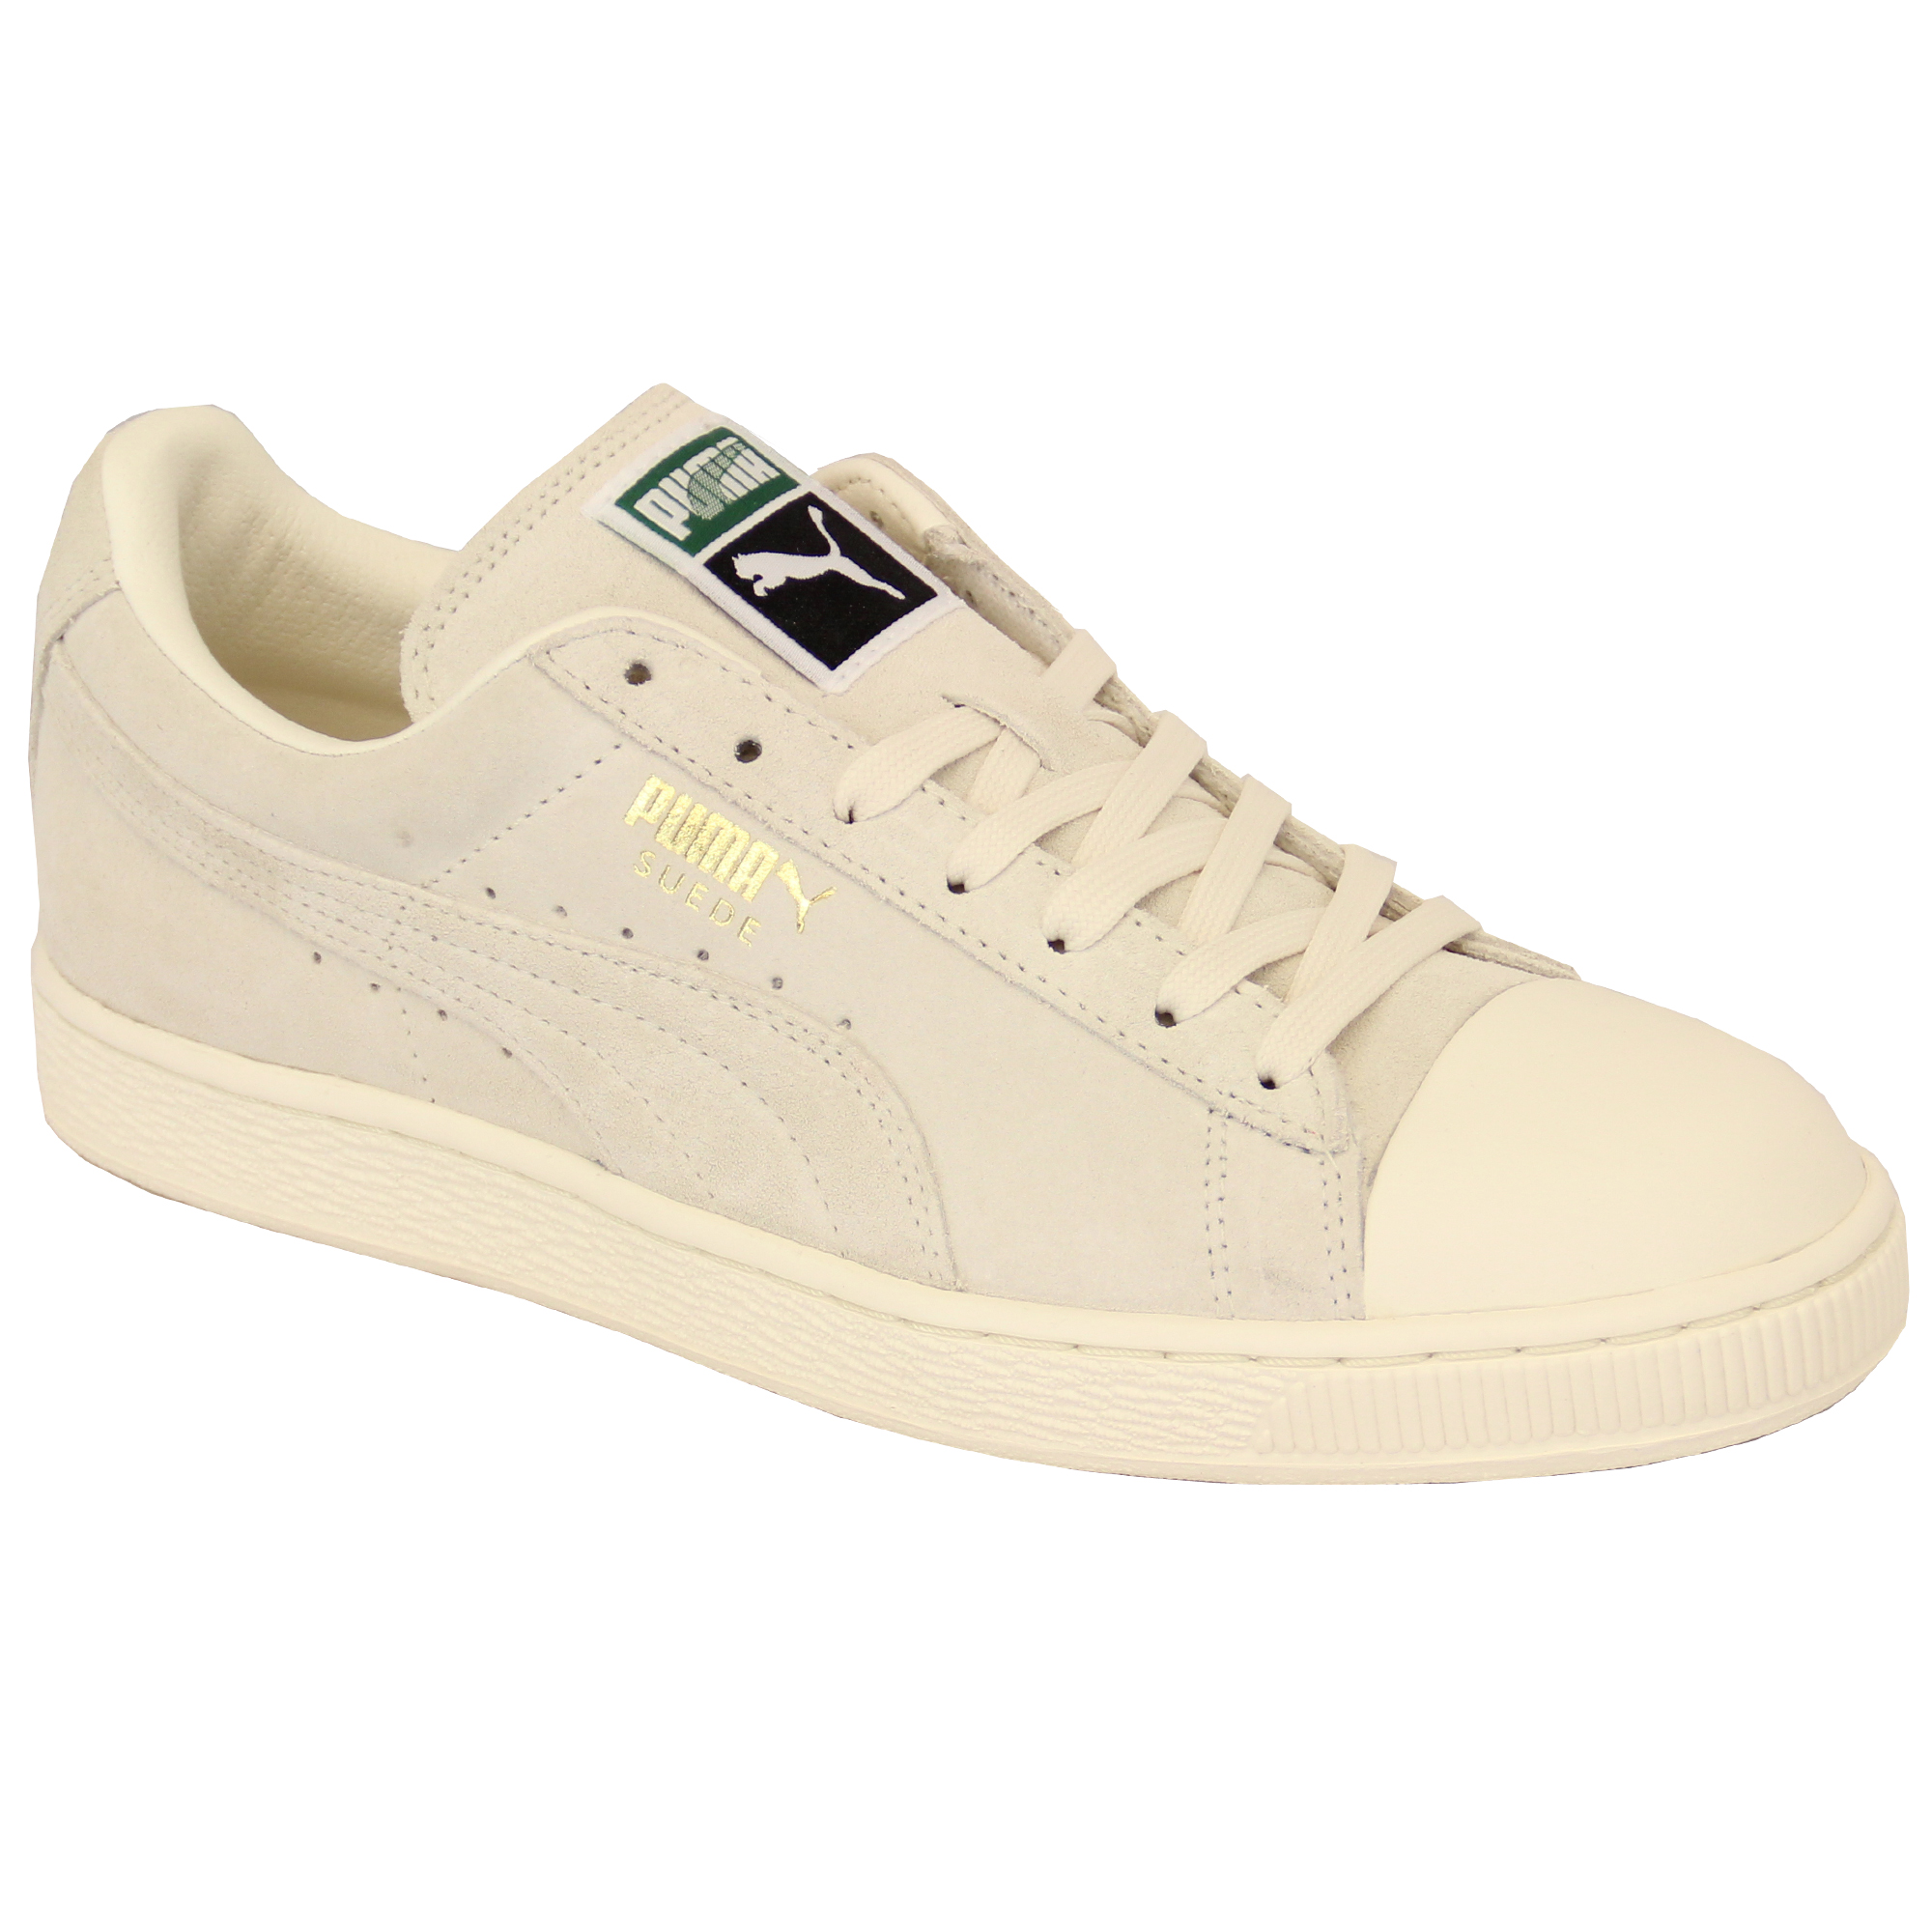 43c46b7257e3 Mens PUMA Trainers Womens Archive Lite Low Suede Leather Shoes ...